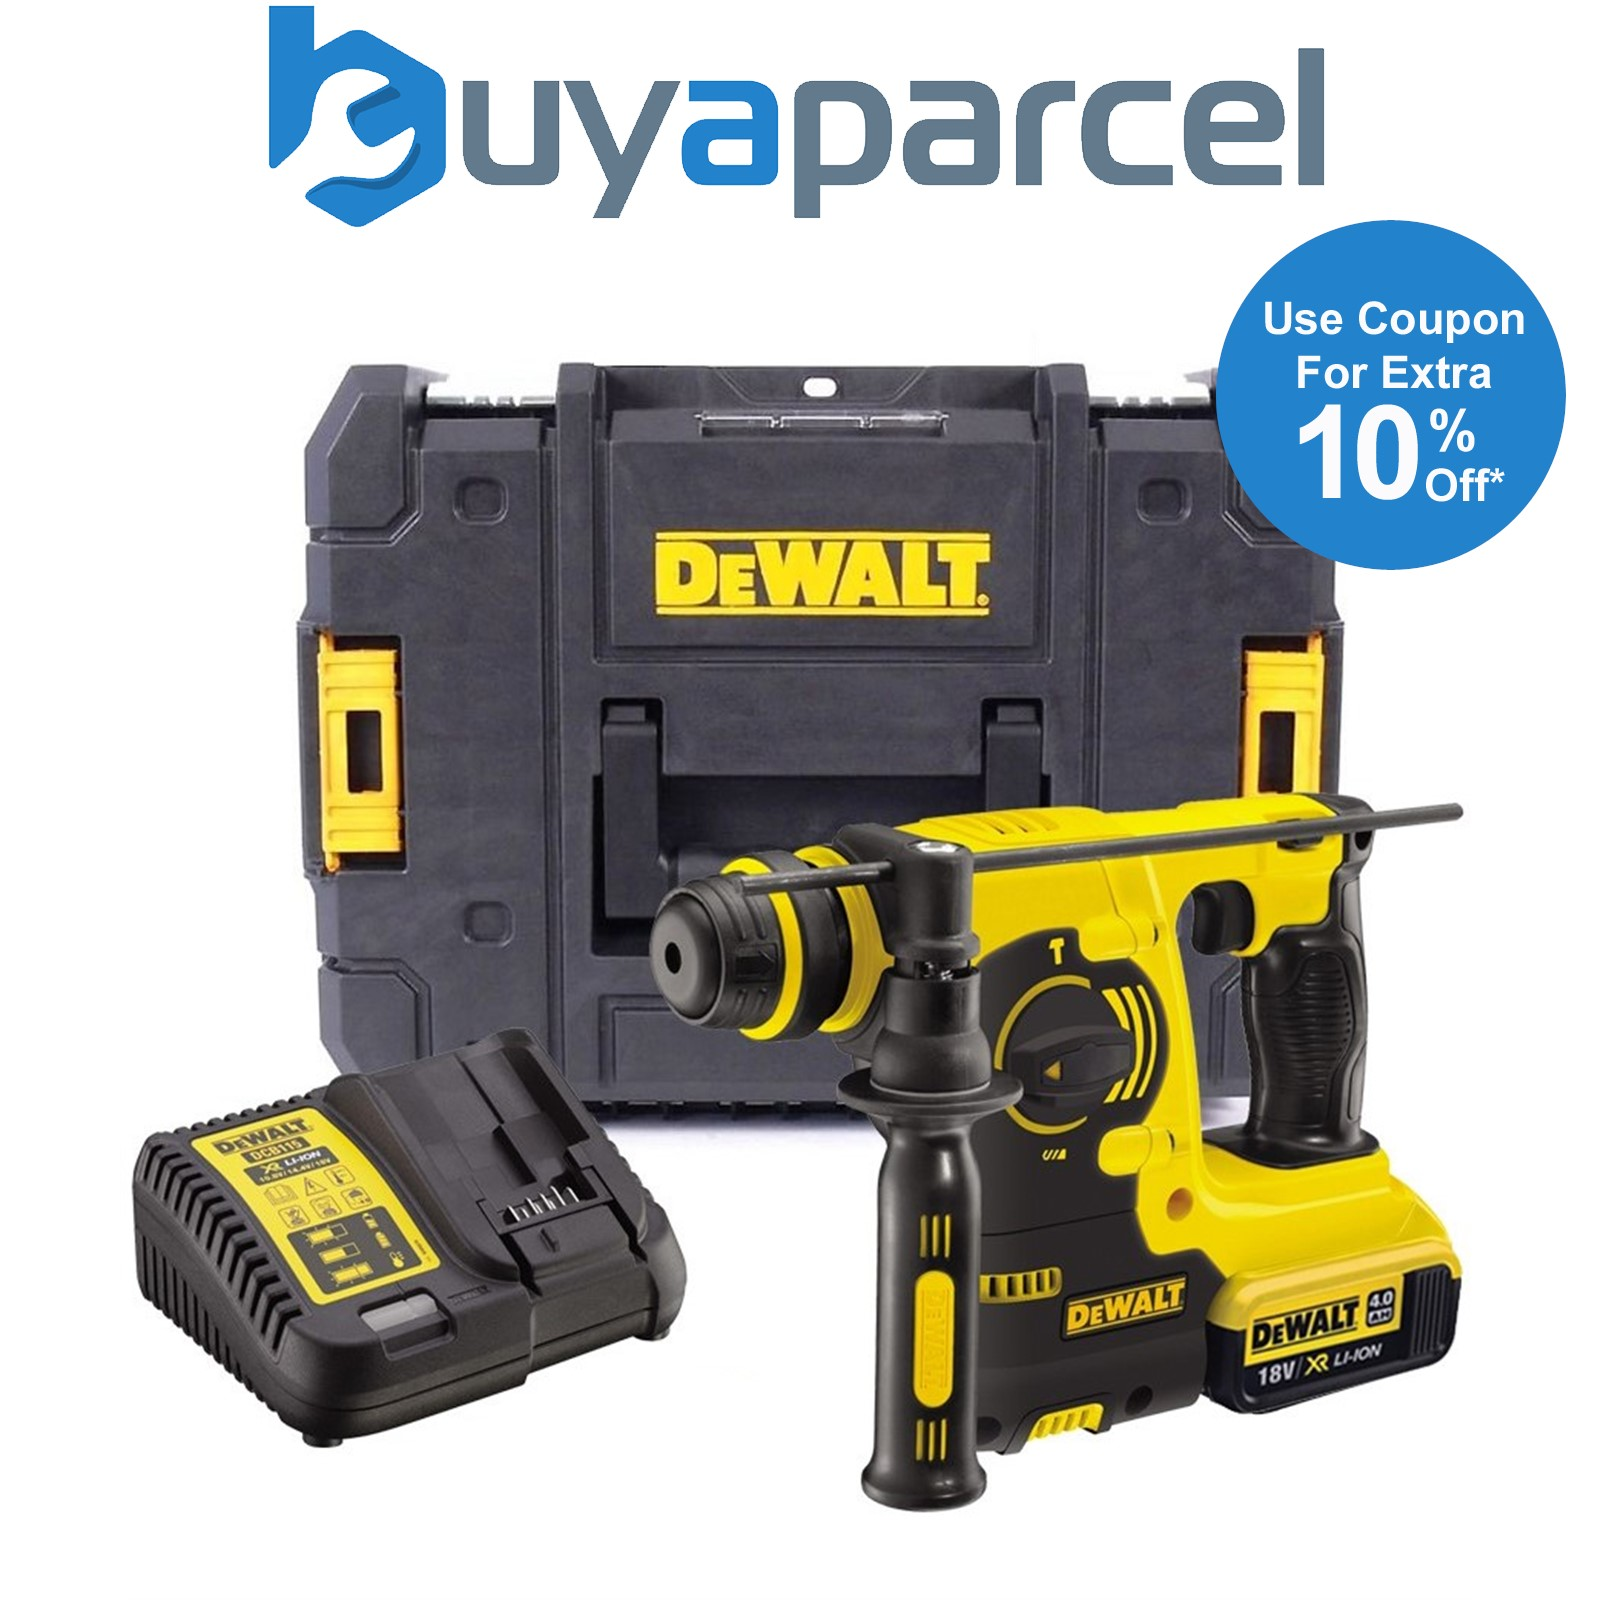 dewalt dch253m1 18v 3kg sds bohrhammer bohrmaschine 1 x batterieladeger t ebay. Black Bedroom Furniture Sets. Home Design Ideas